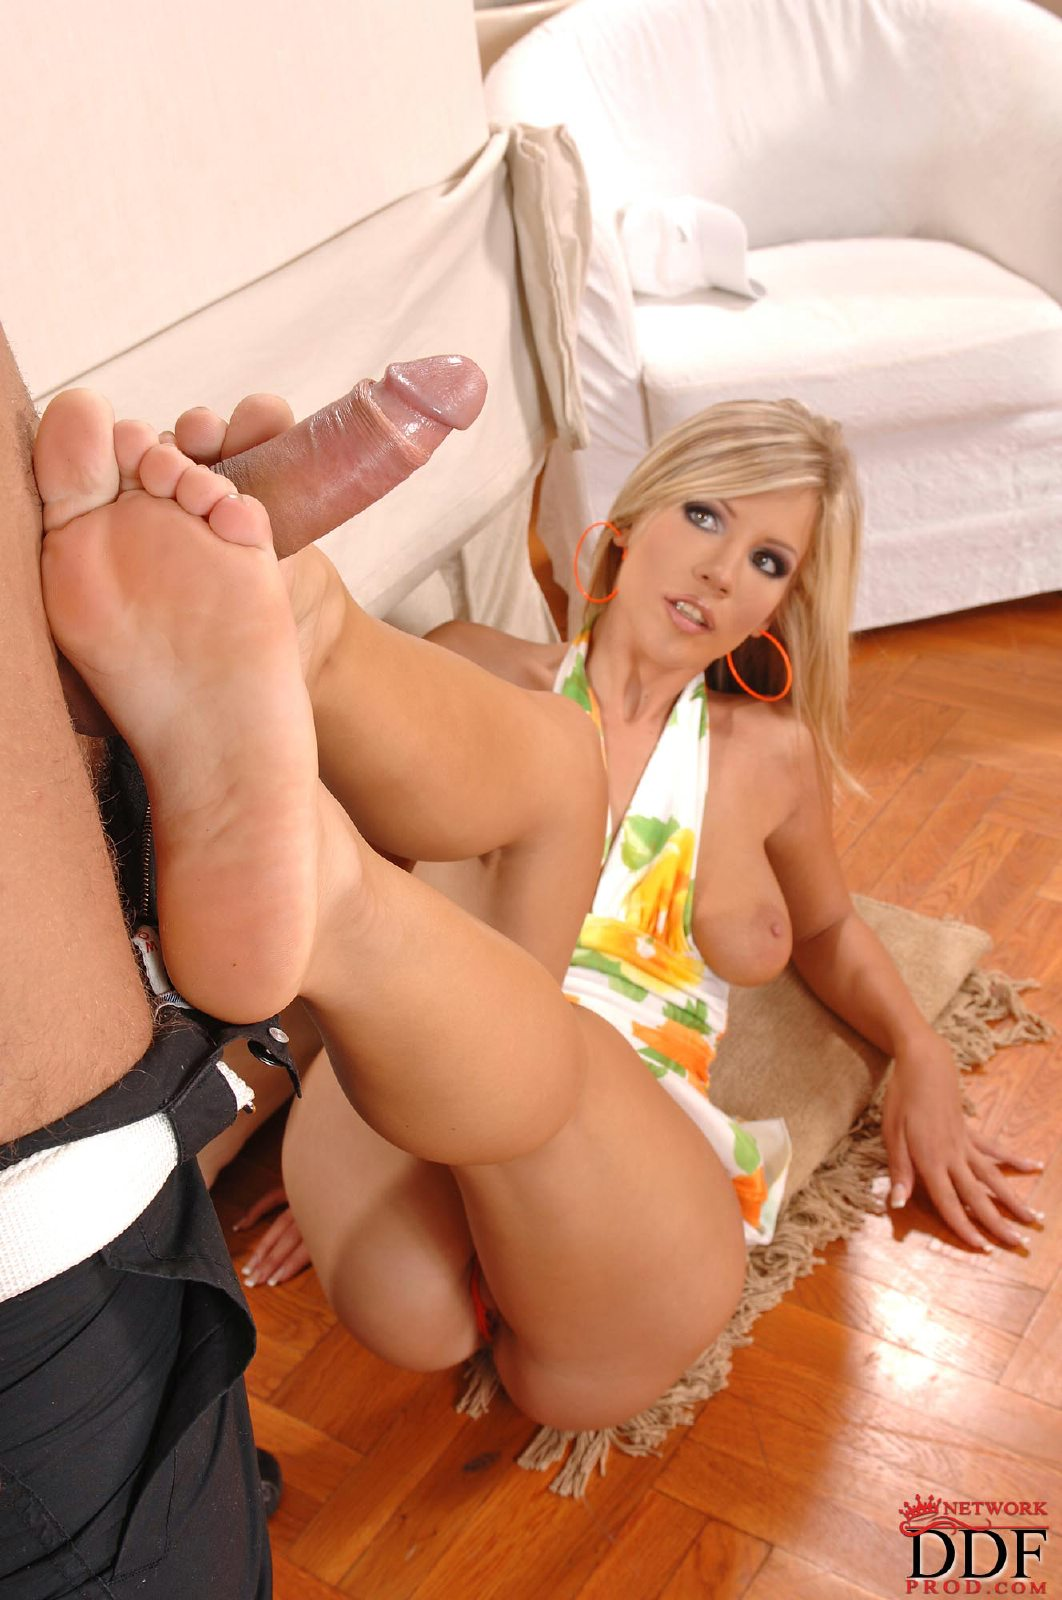 Cute blonde giving a footjob and getting fucked in ripped up thigh highs